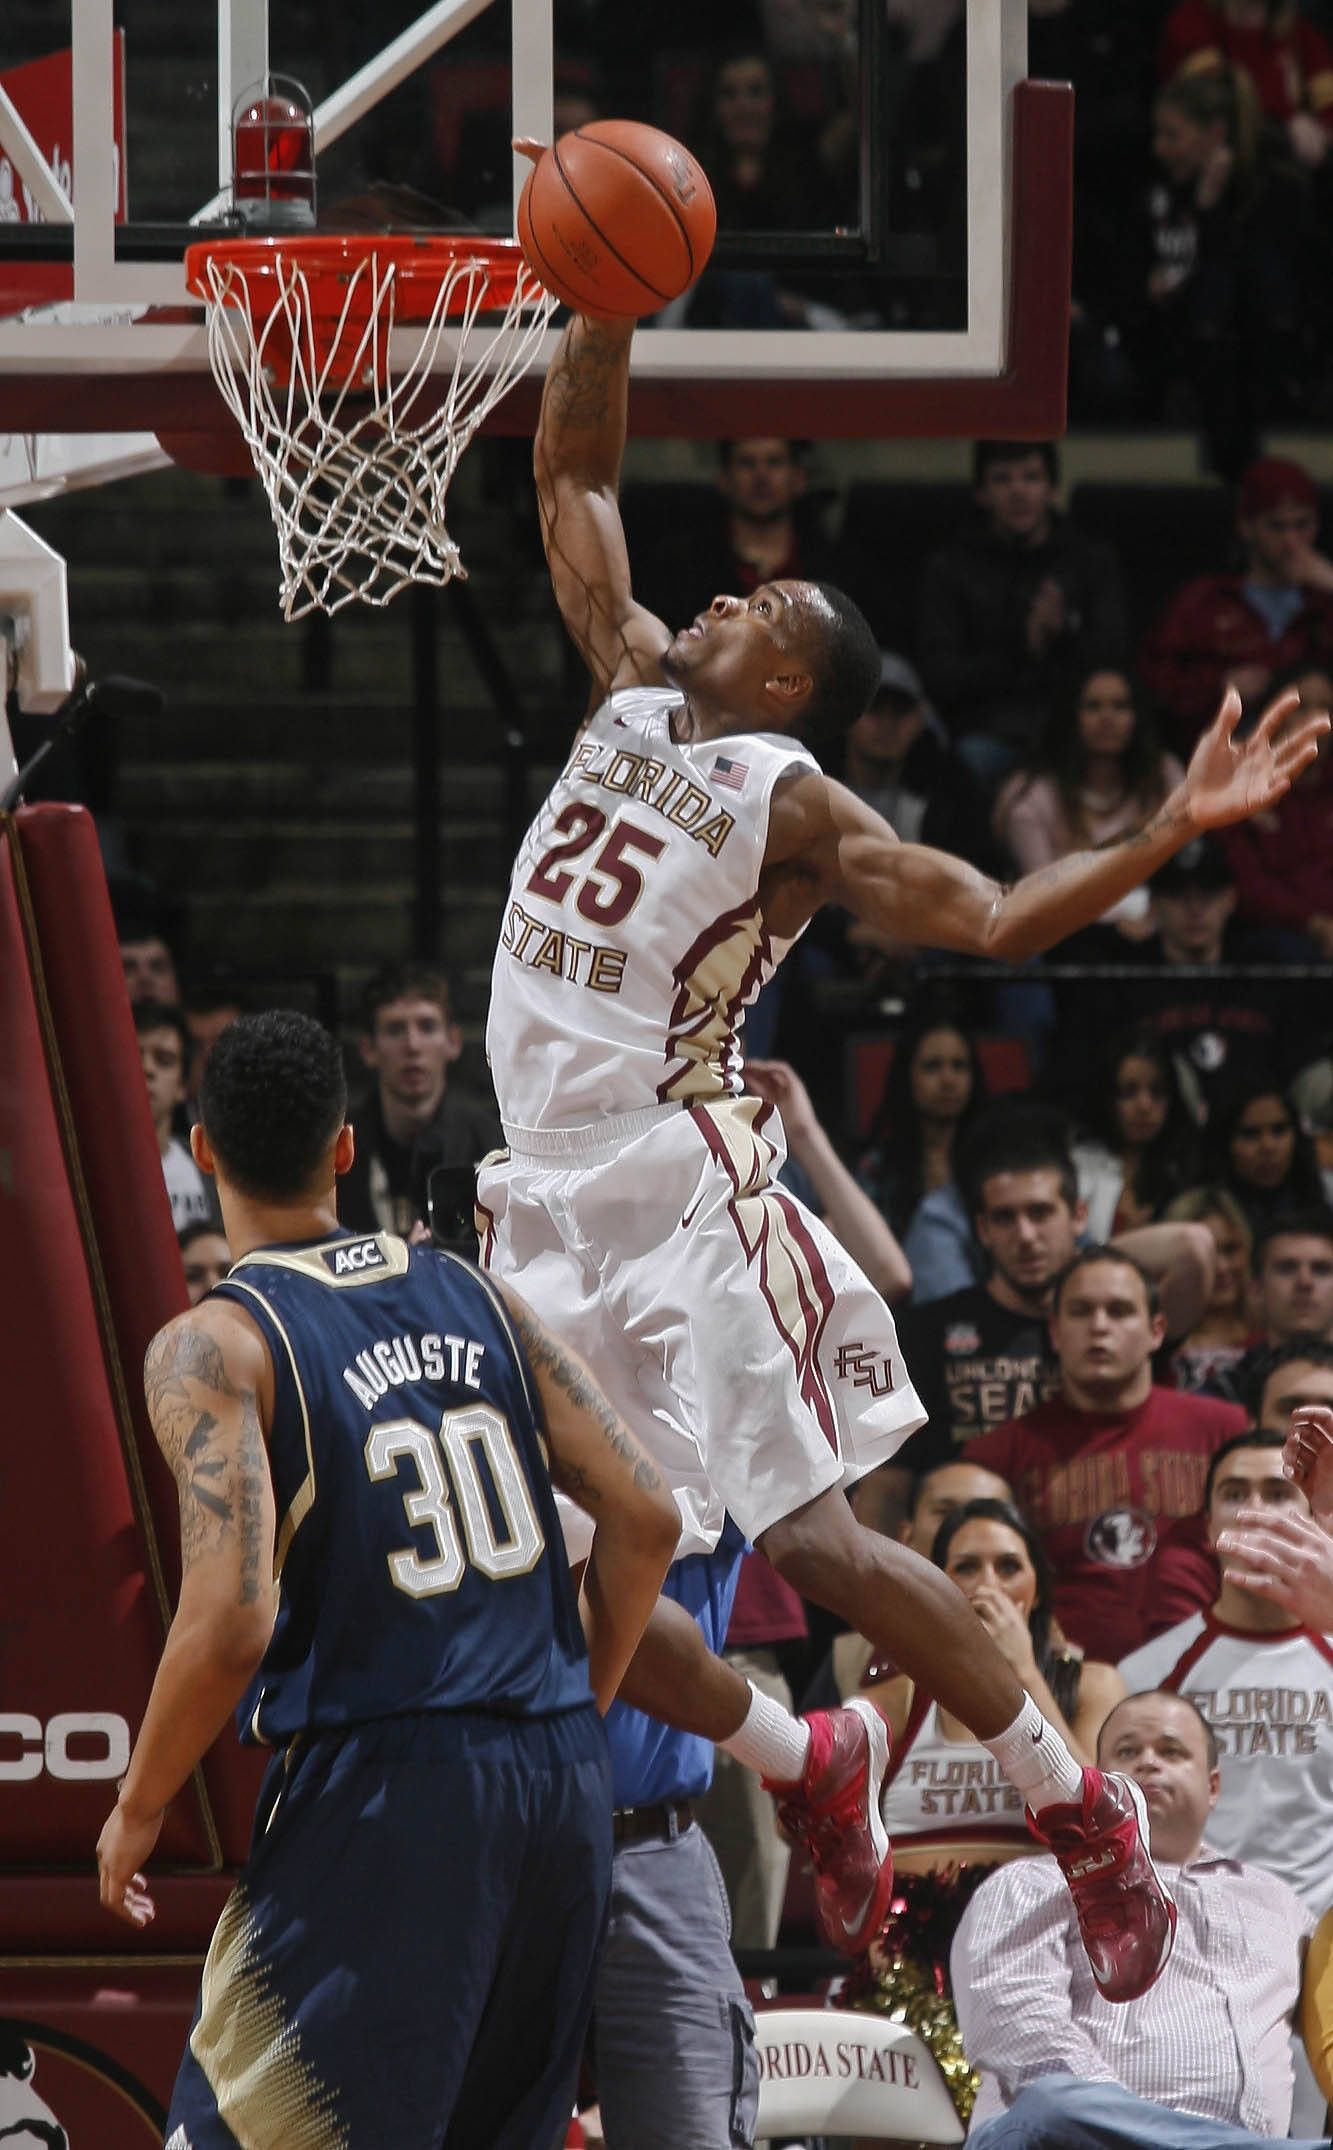 Jan 21, 2014; Tallahassee, FL, USA; Florida State Seminoles guard Aaron Thomas (25) grabs a rebound as Notre Dame Fighting Irish forward Zach Auguste (30) watches in the second half at the Donald L. Tucker Center. The Florida State Seminoles beat the Notre Dame Fighting Irish 76-74. Mandatory Credit: Phil Sears-USA TODAY Sports